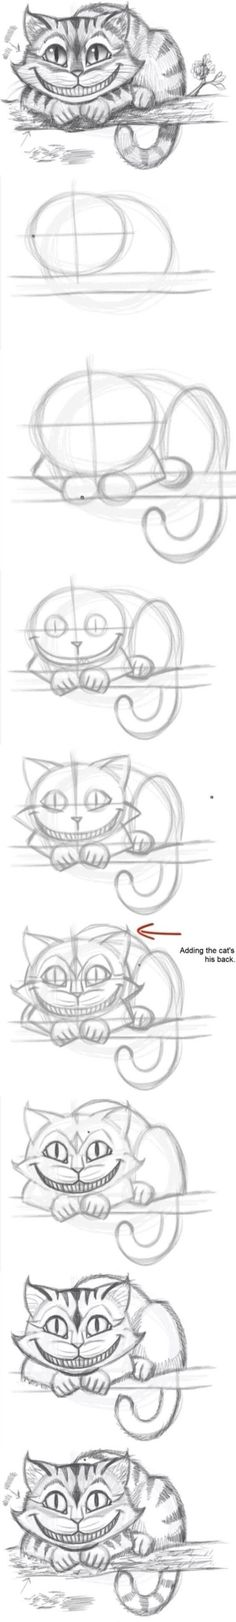 #Drawing Lessons❤# Cheshire Cat❤#Meow❤